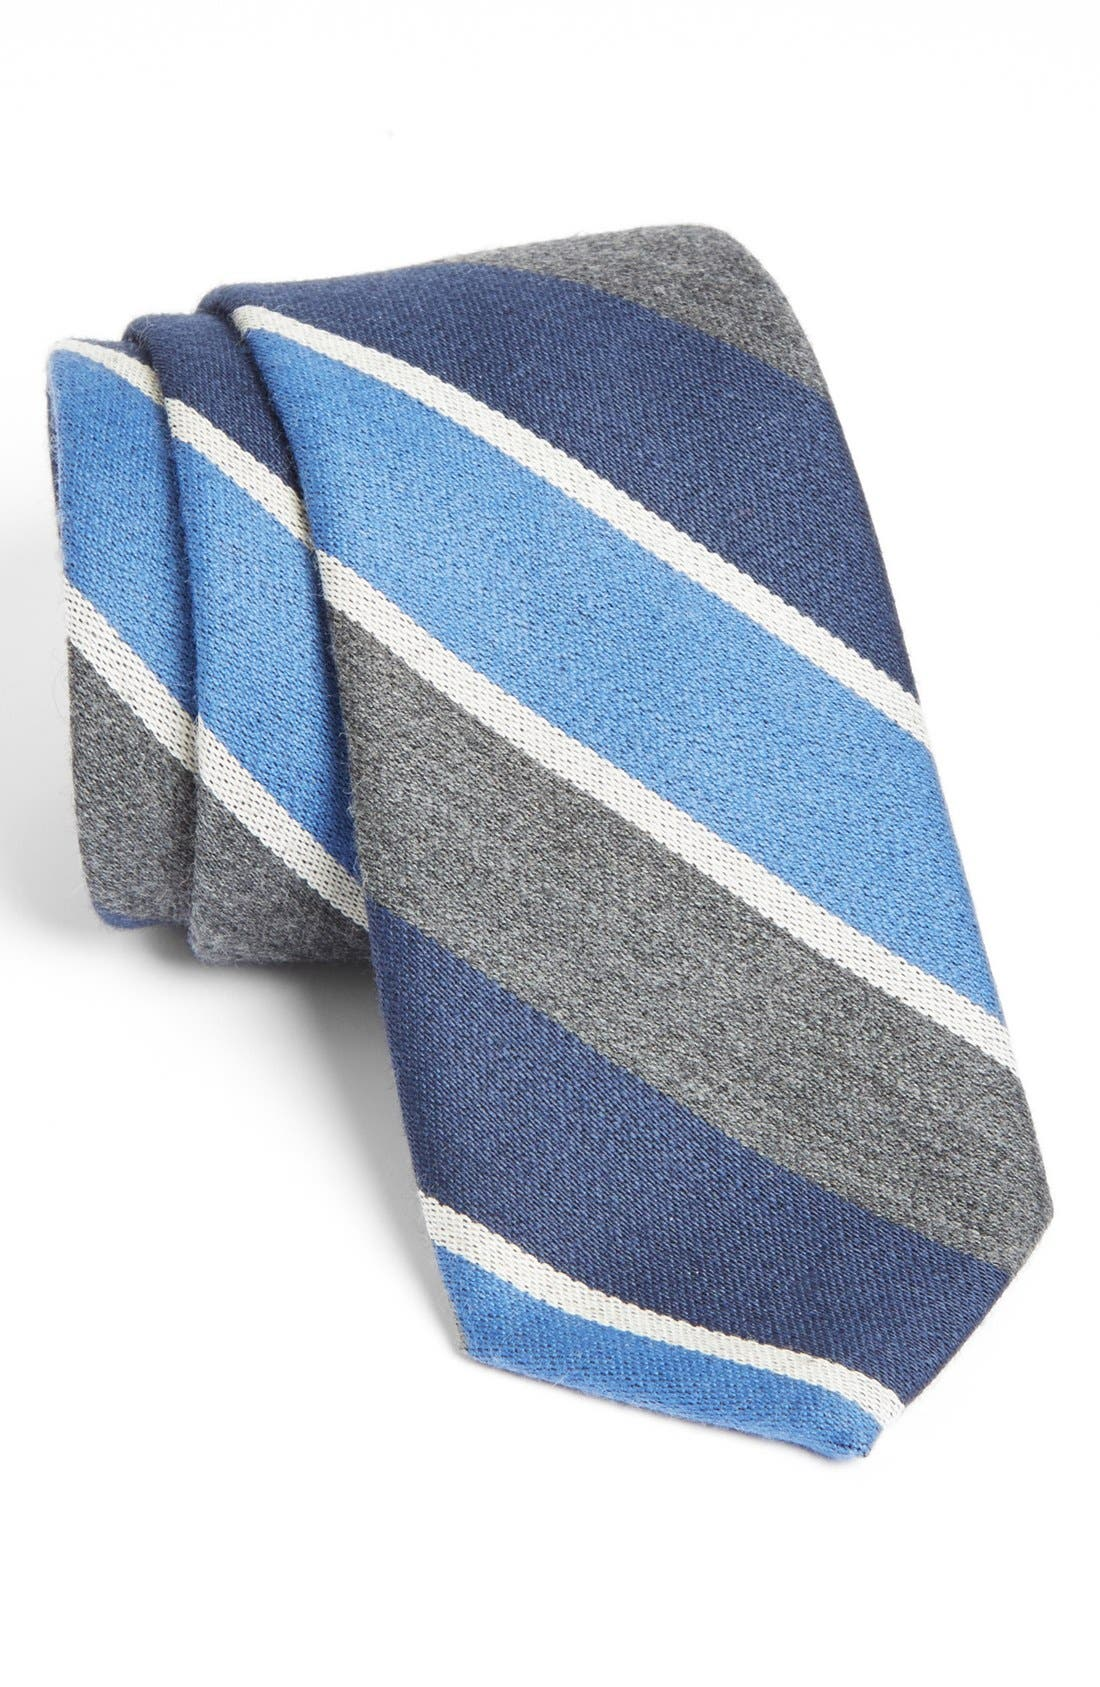 Alternate Image 1 Selected - Gitman Stripe Woven Wool Tie